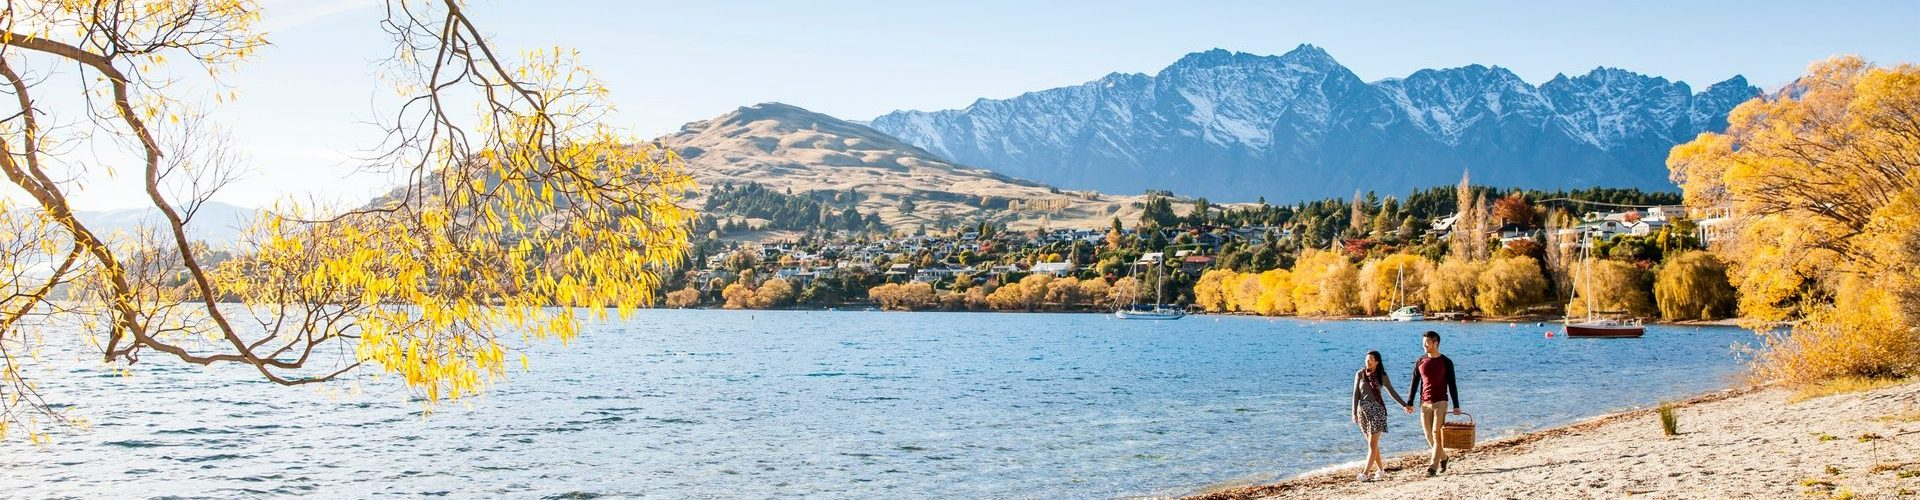 Lake-Hayes-Queenstown-Trail-Queenstown-Credit Miles-Holden